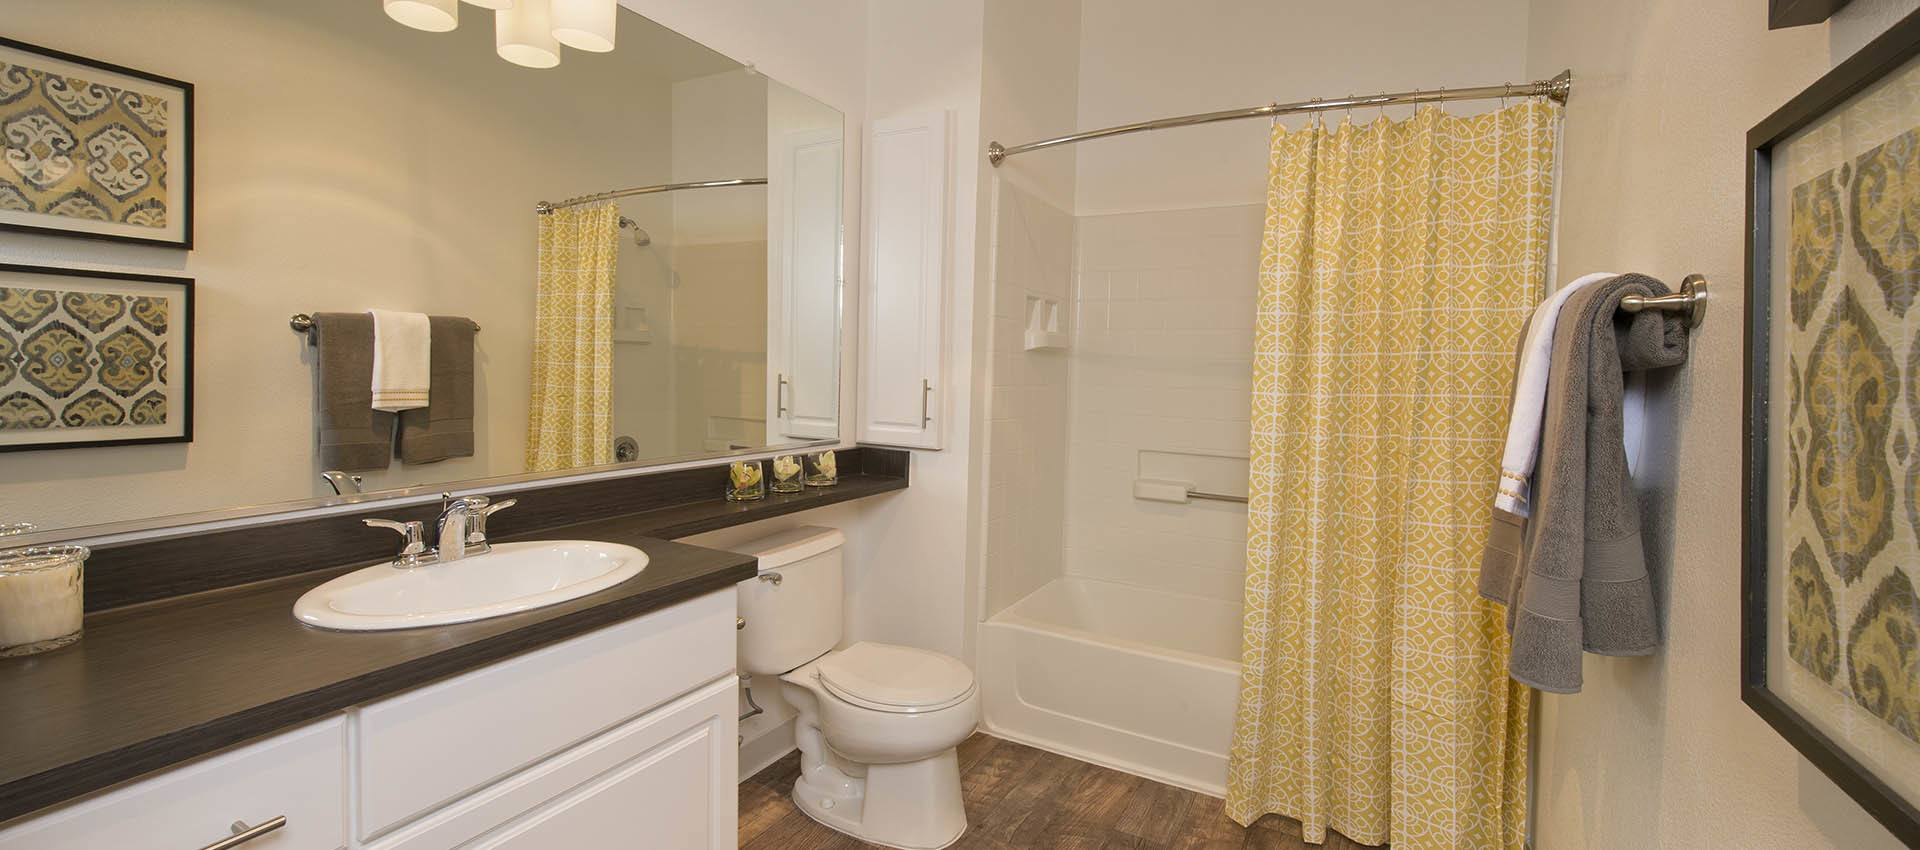 Spacious Bathroom at Rosewalk at San Jose